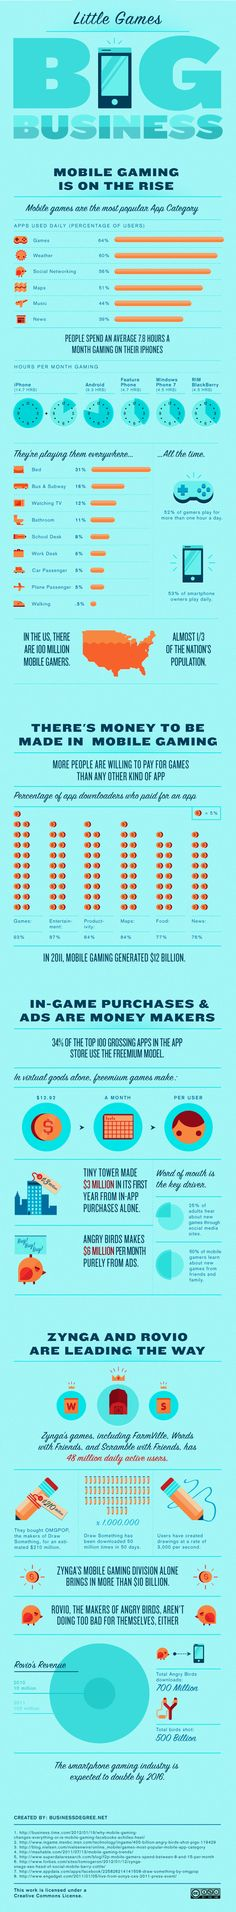 DUH, I'd love to carry around my fave games, play them online, and reduce my e-waste footprint.